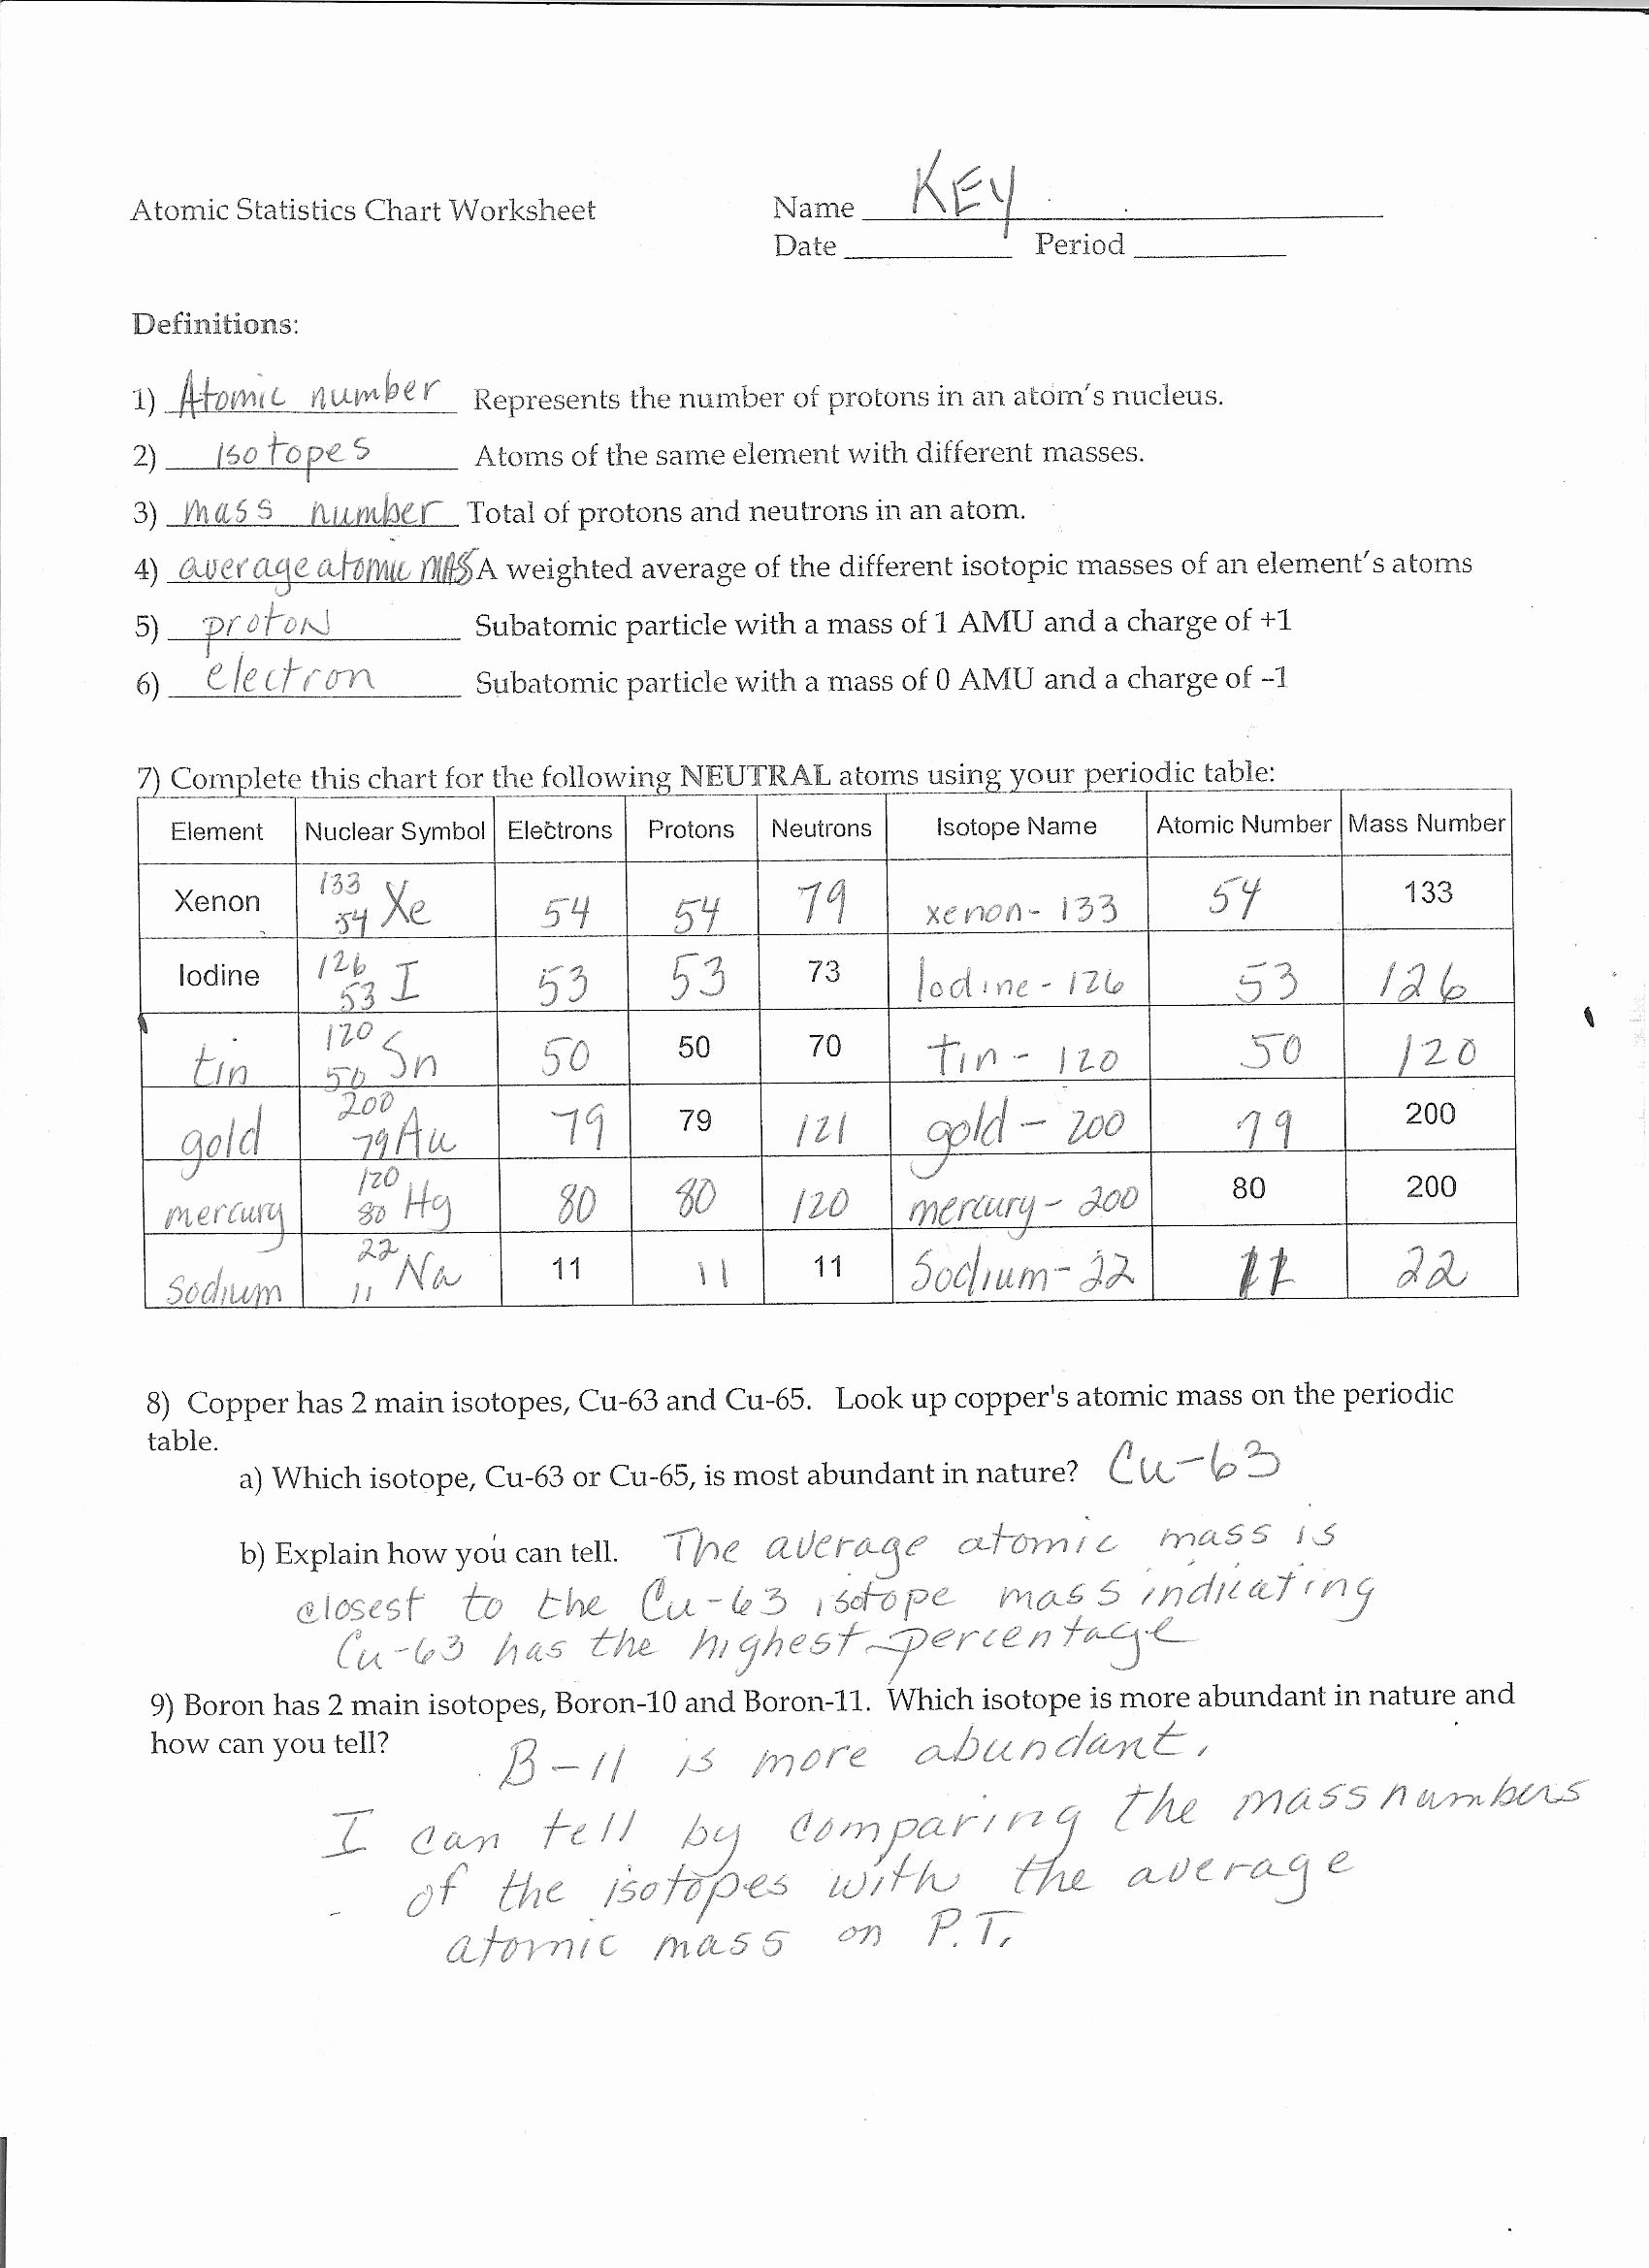 Isotopes Worksheet Answer Key Beautiful isotopes Ions and atoms Worksheet 2 Answer Key